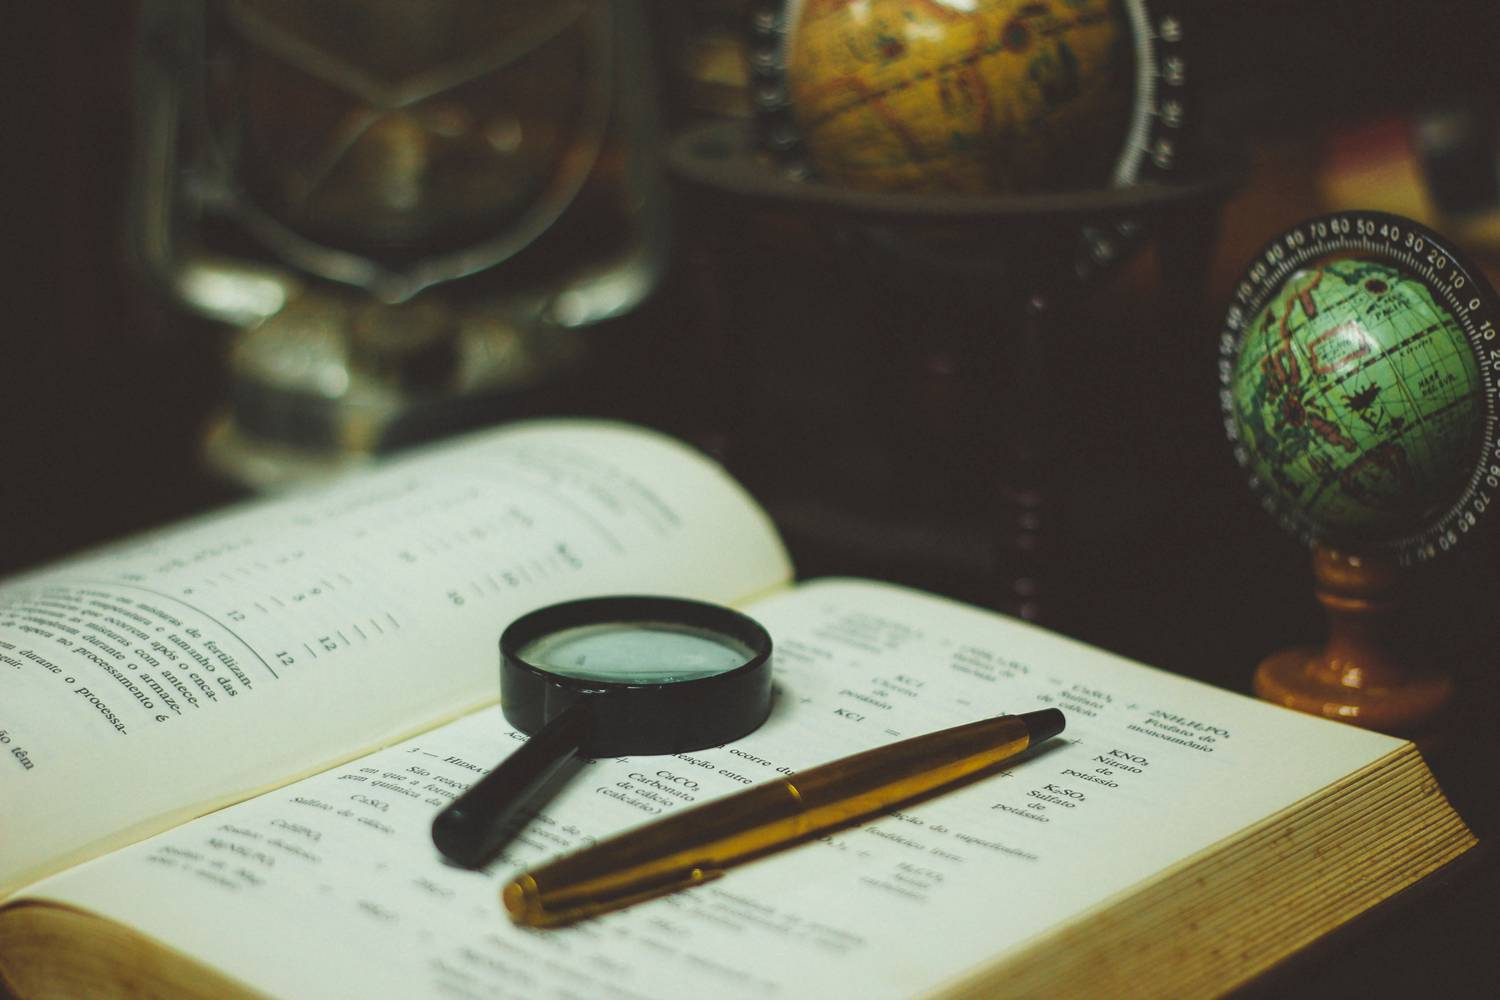 Private detective - is it worth using his services?